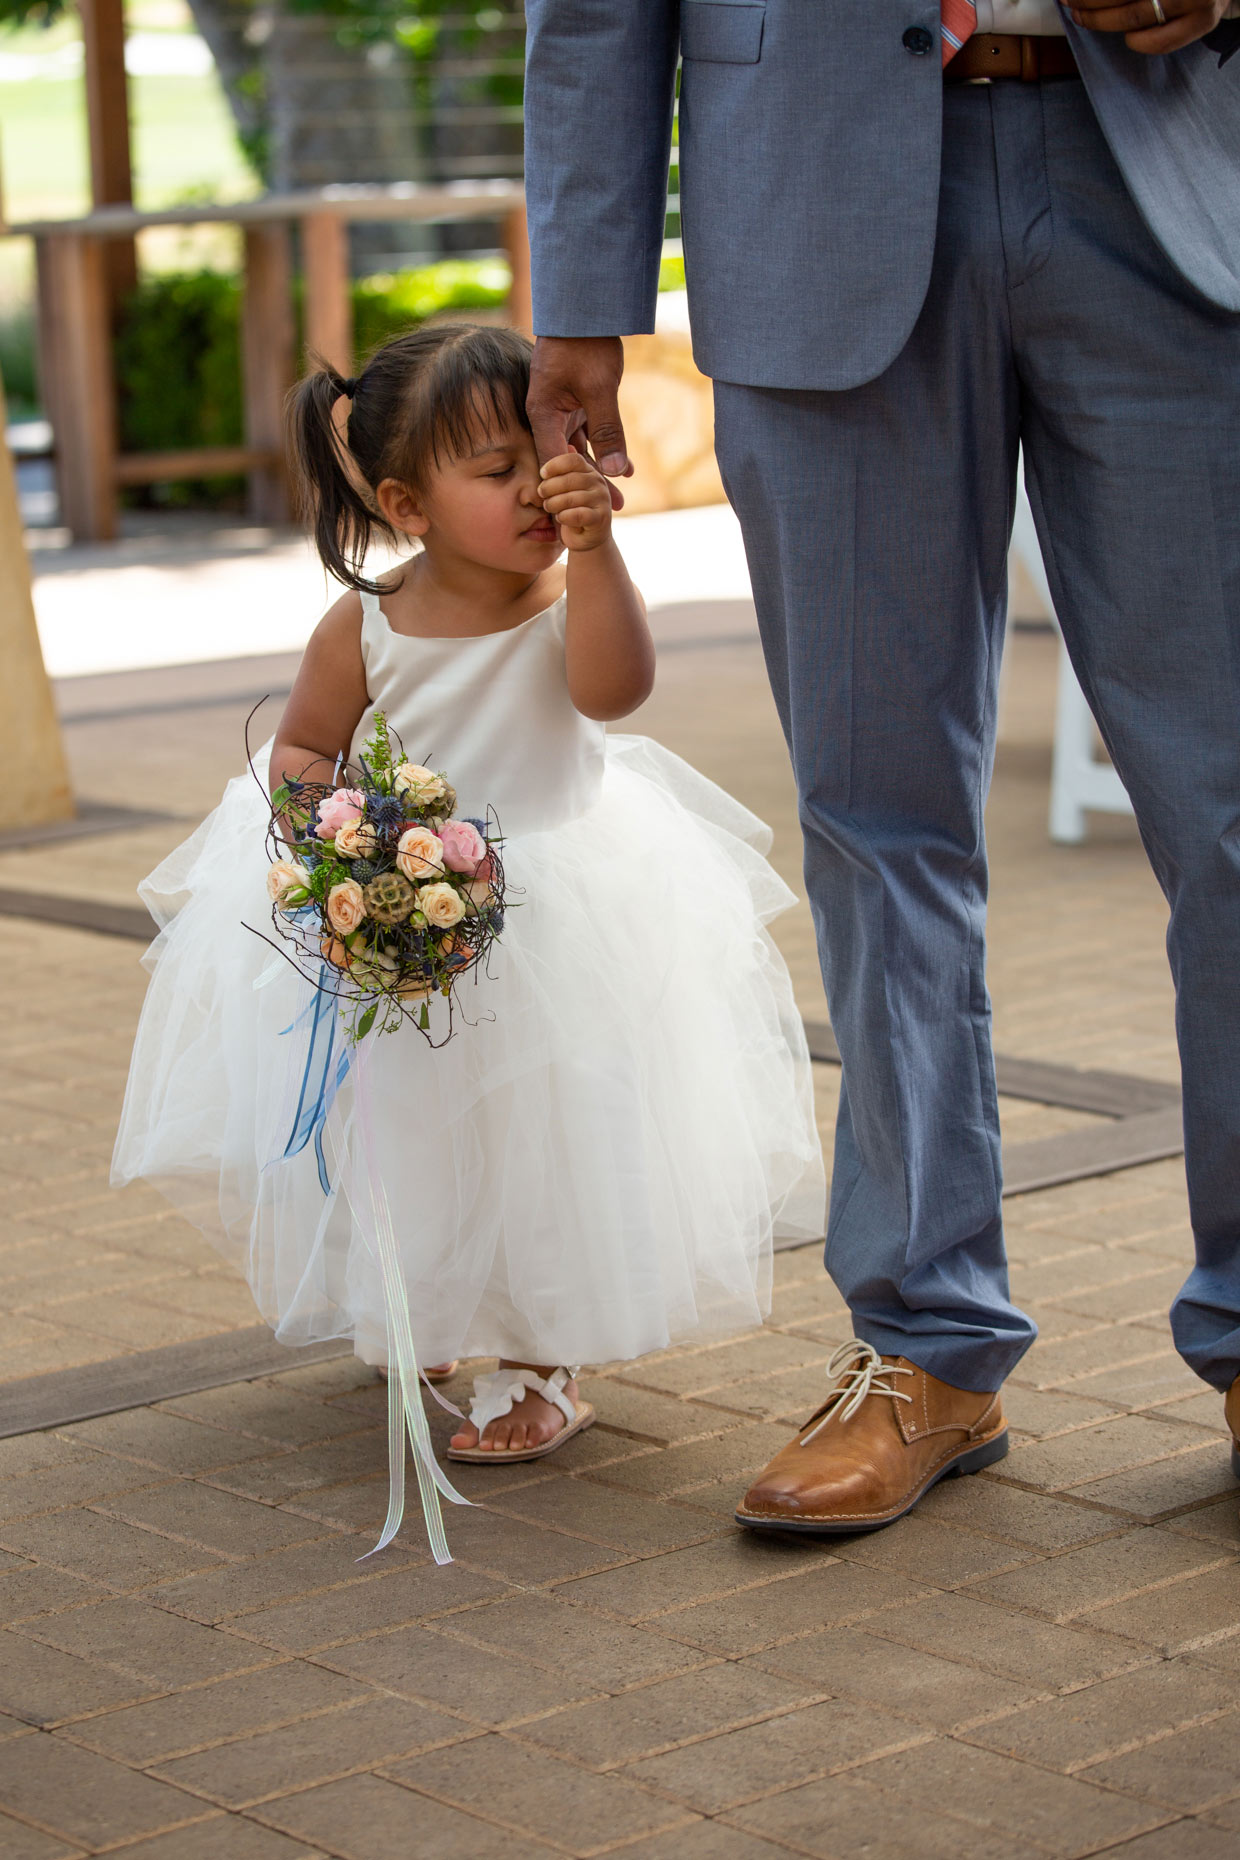 flower_girl_wedding_photographer.jpg